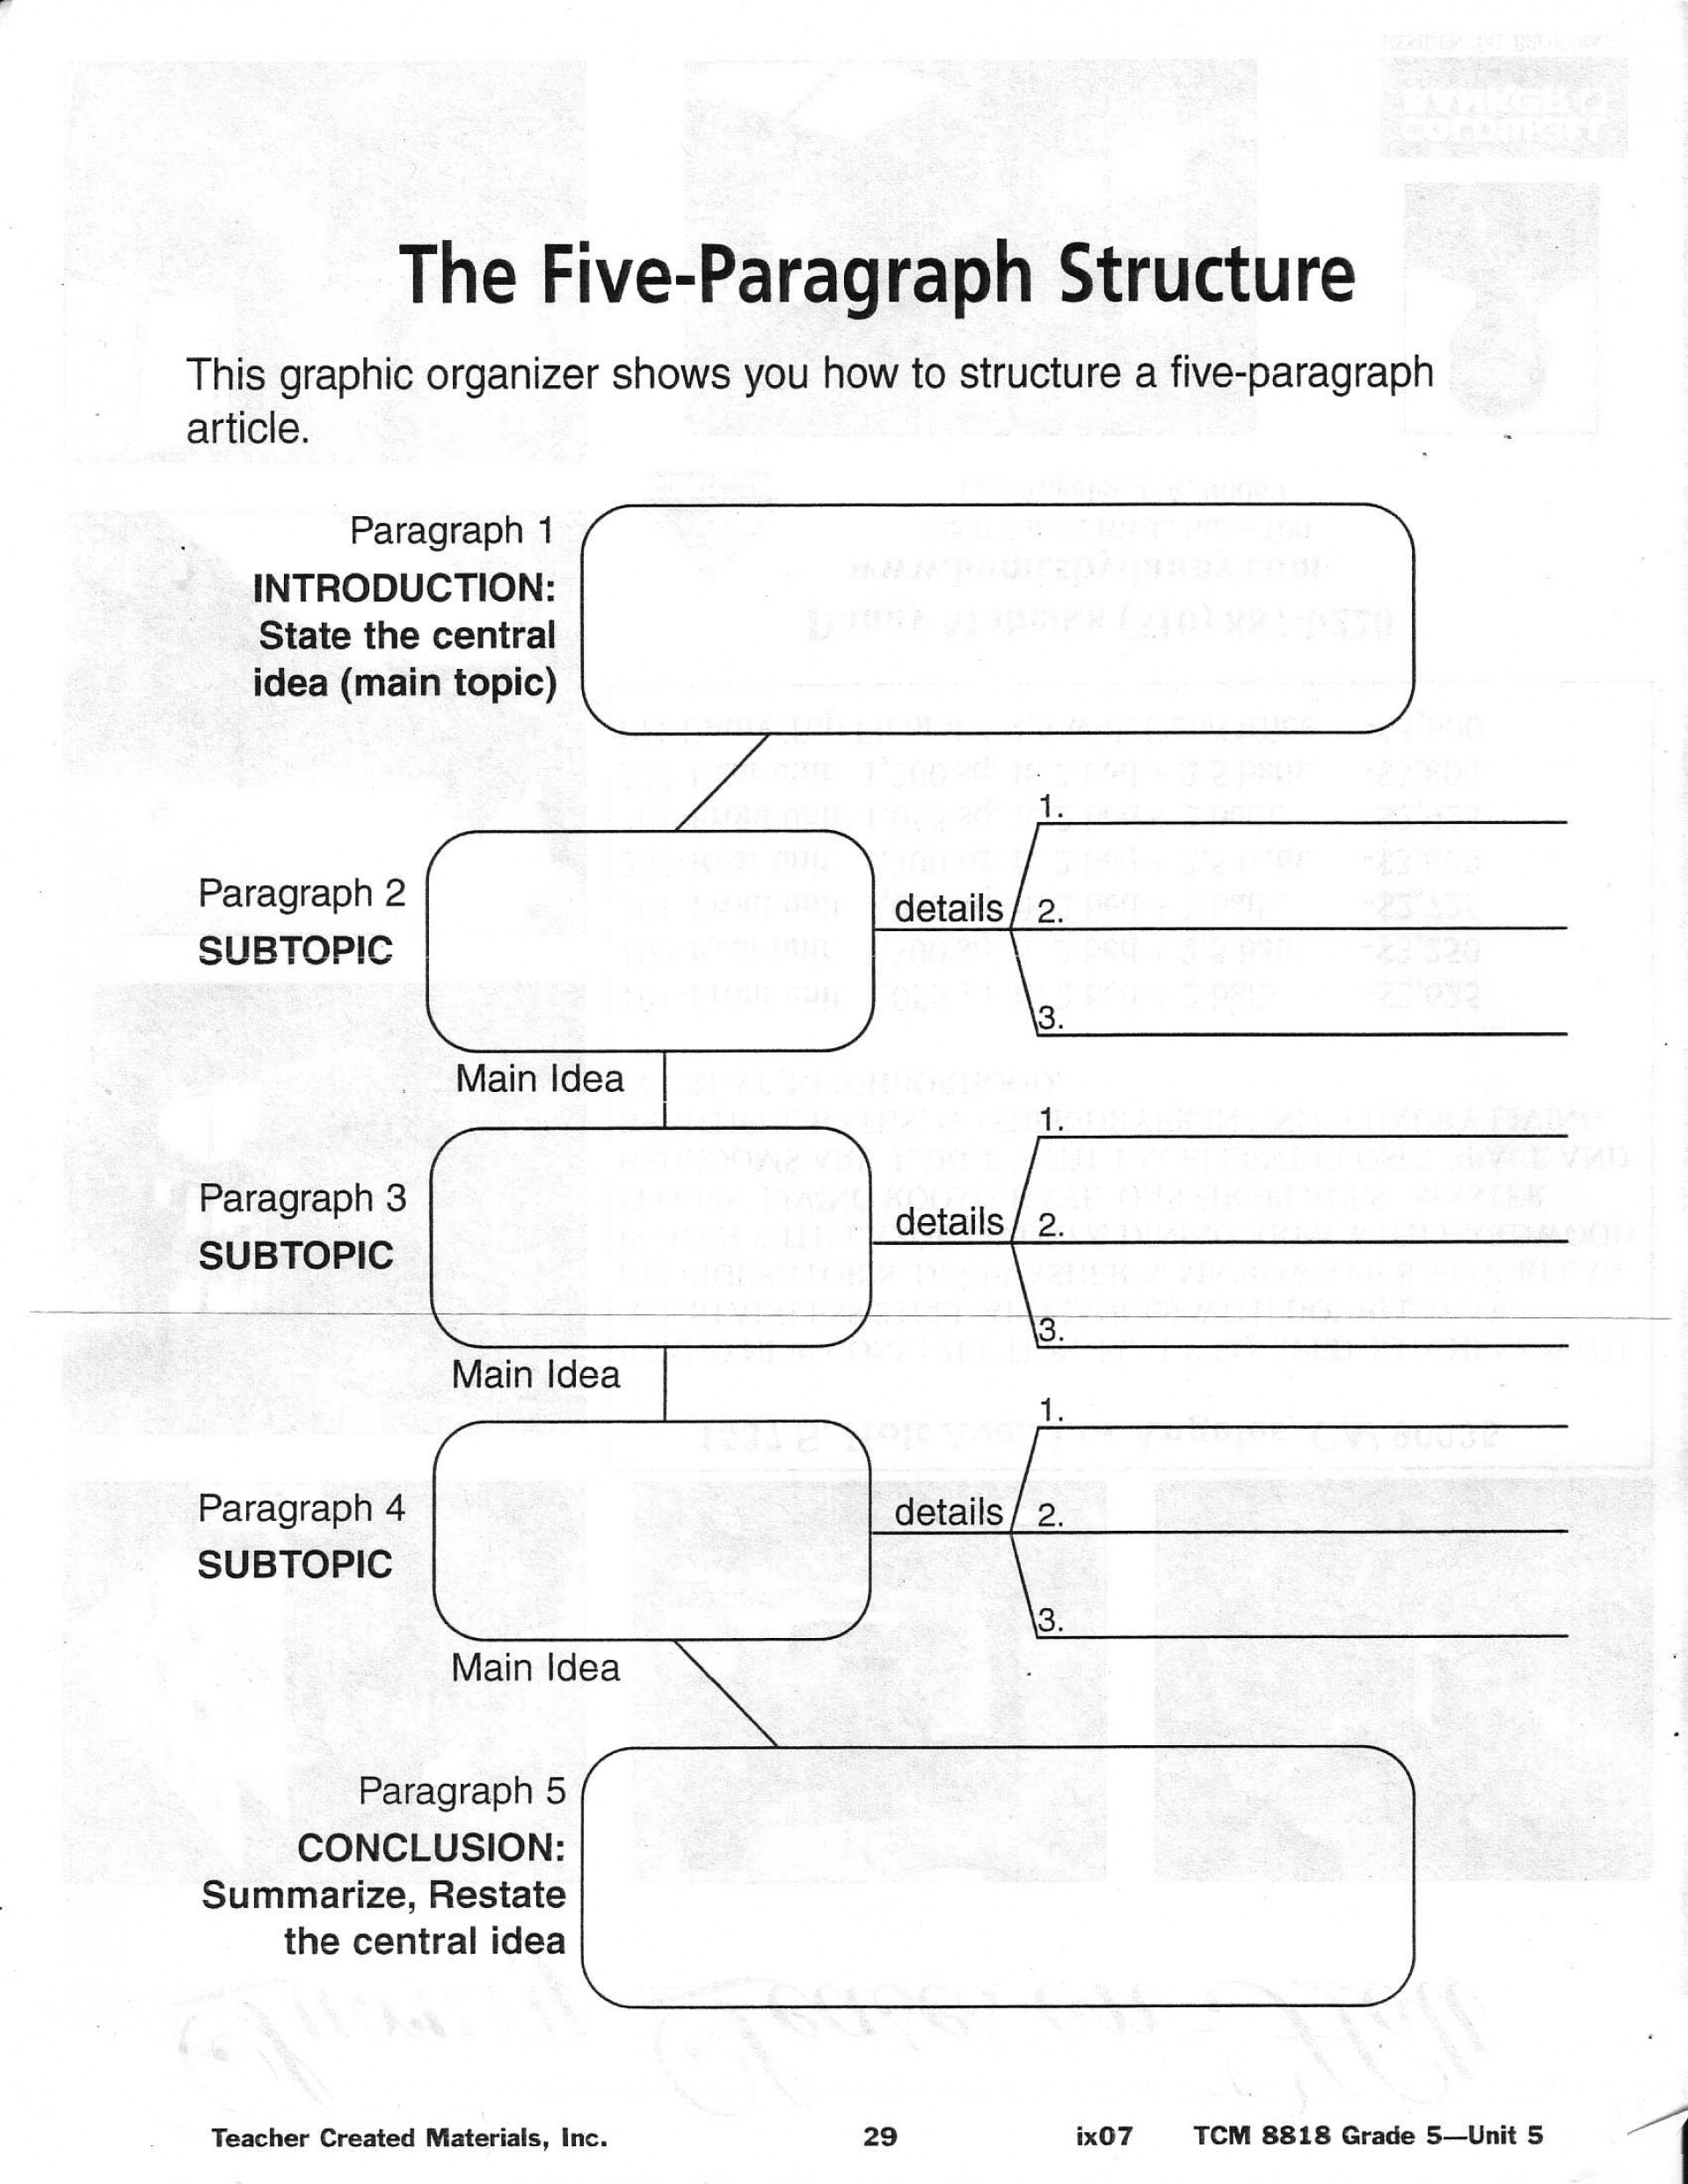 011 Essay Example Graphic Organizers For Writing Essays Organizer 563805 Marvelous 5 Paragraph Best Informative 1920